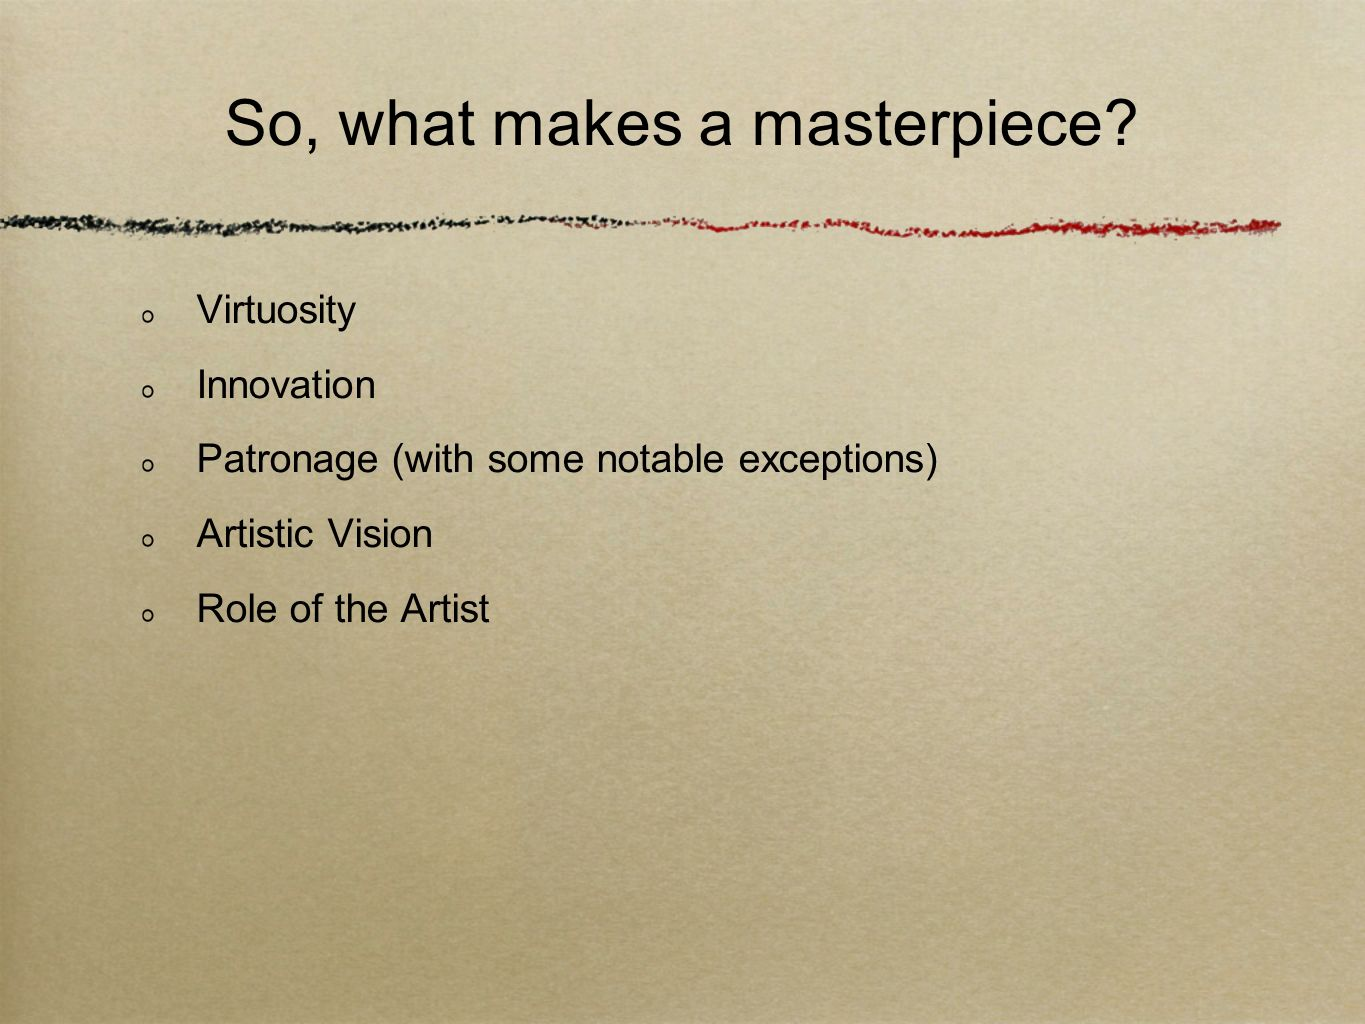 So, what makes a masterpiece